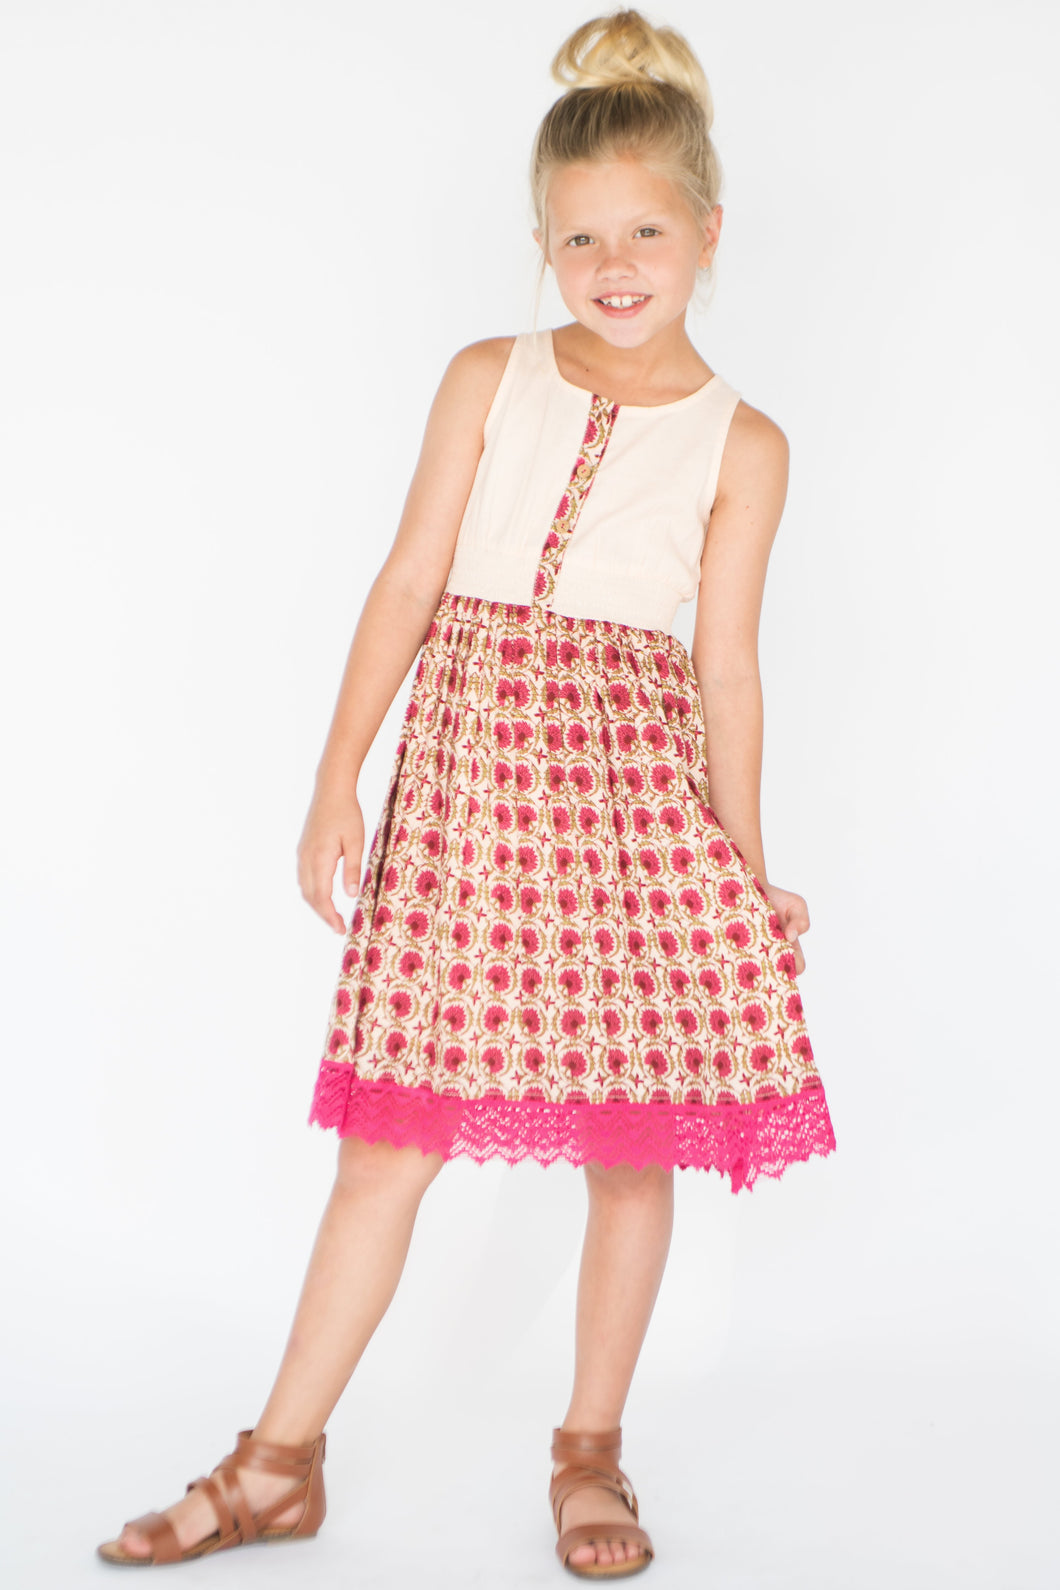 Pink Floral Lace-Trim A-Line Dress - Kids Clothing, Dress - Girls Dress, Yo Baby Online - Yo Baby